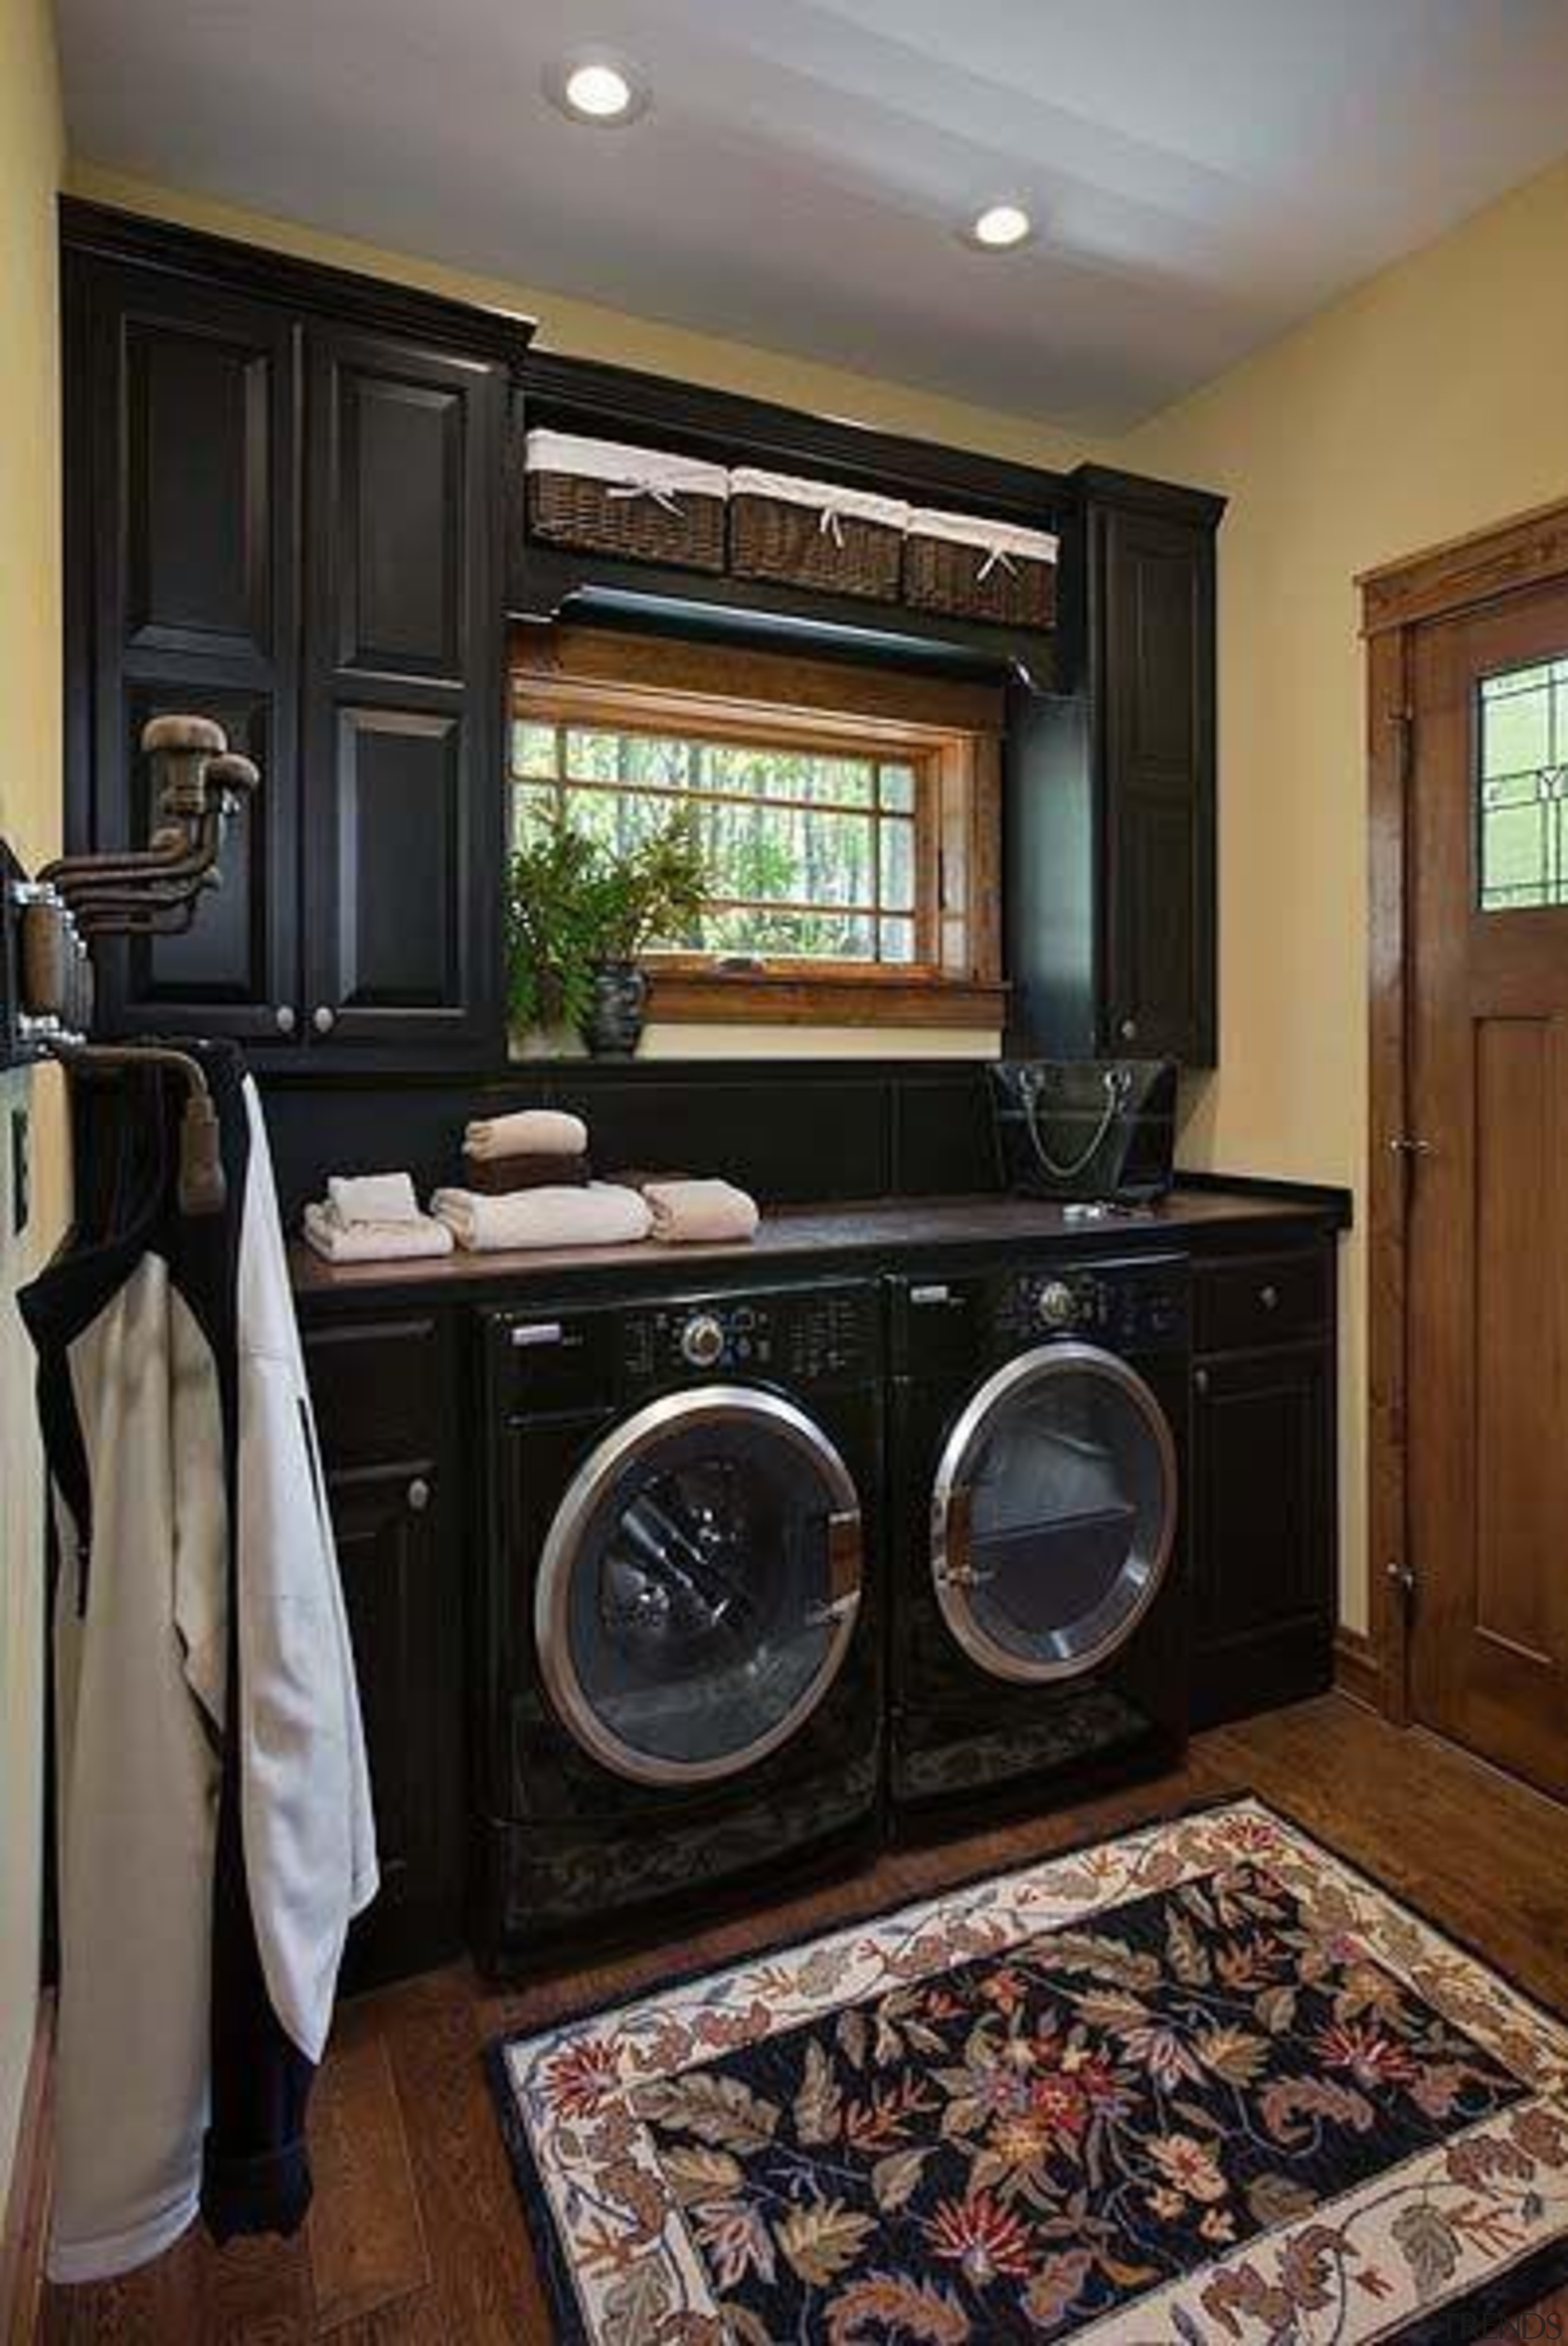 Utilitarian spaces such as laundry rooms and mudrooms cabinetry, countertop, home, home appliance, interior design, kitchen, laundry room, major appliance, room, black, gray